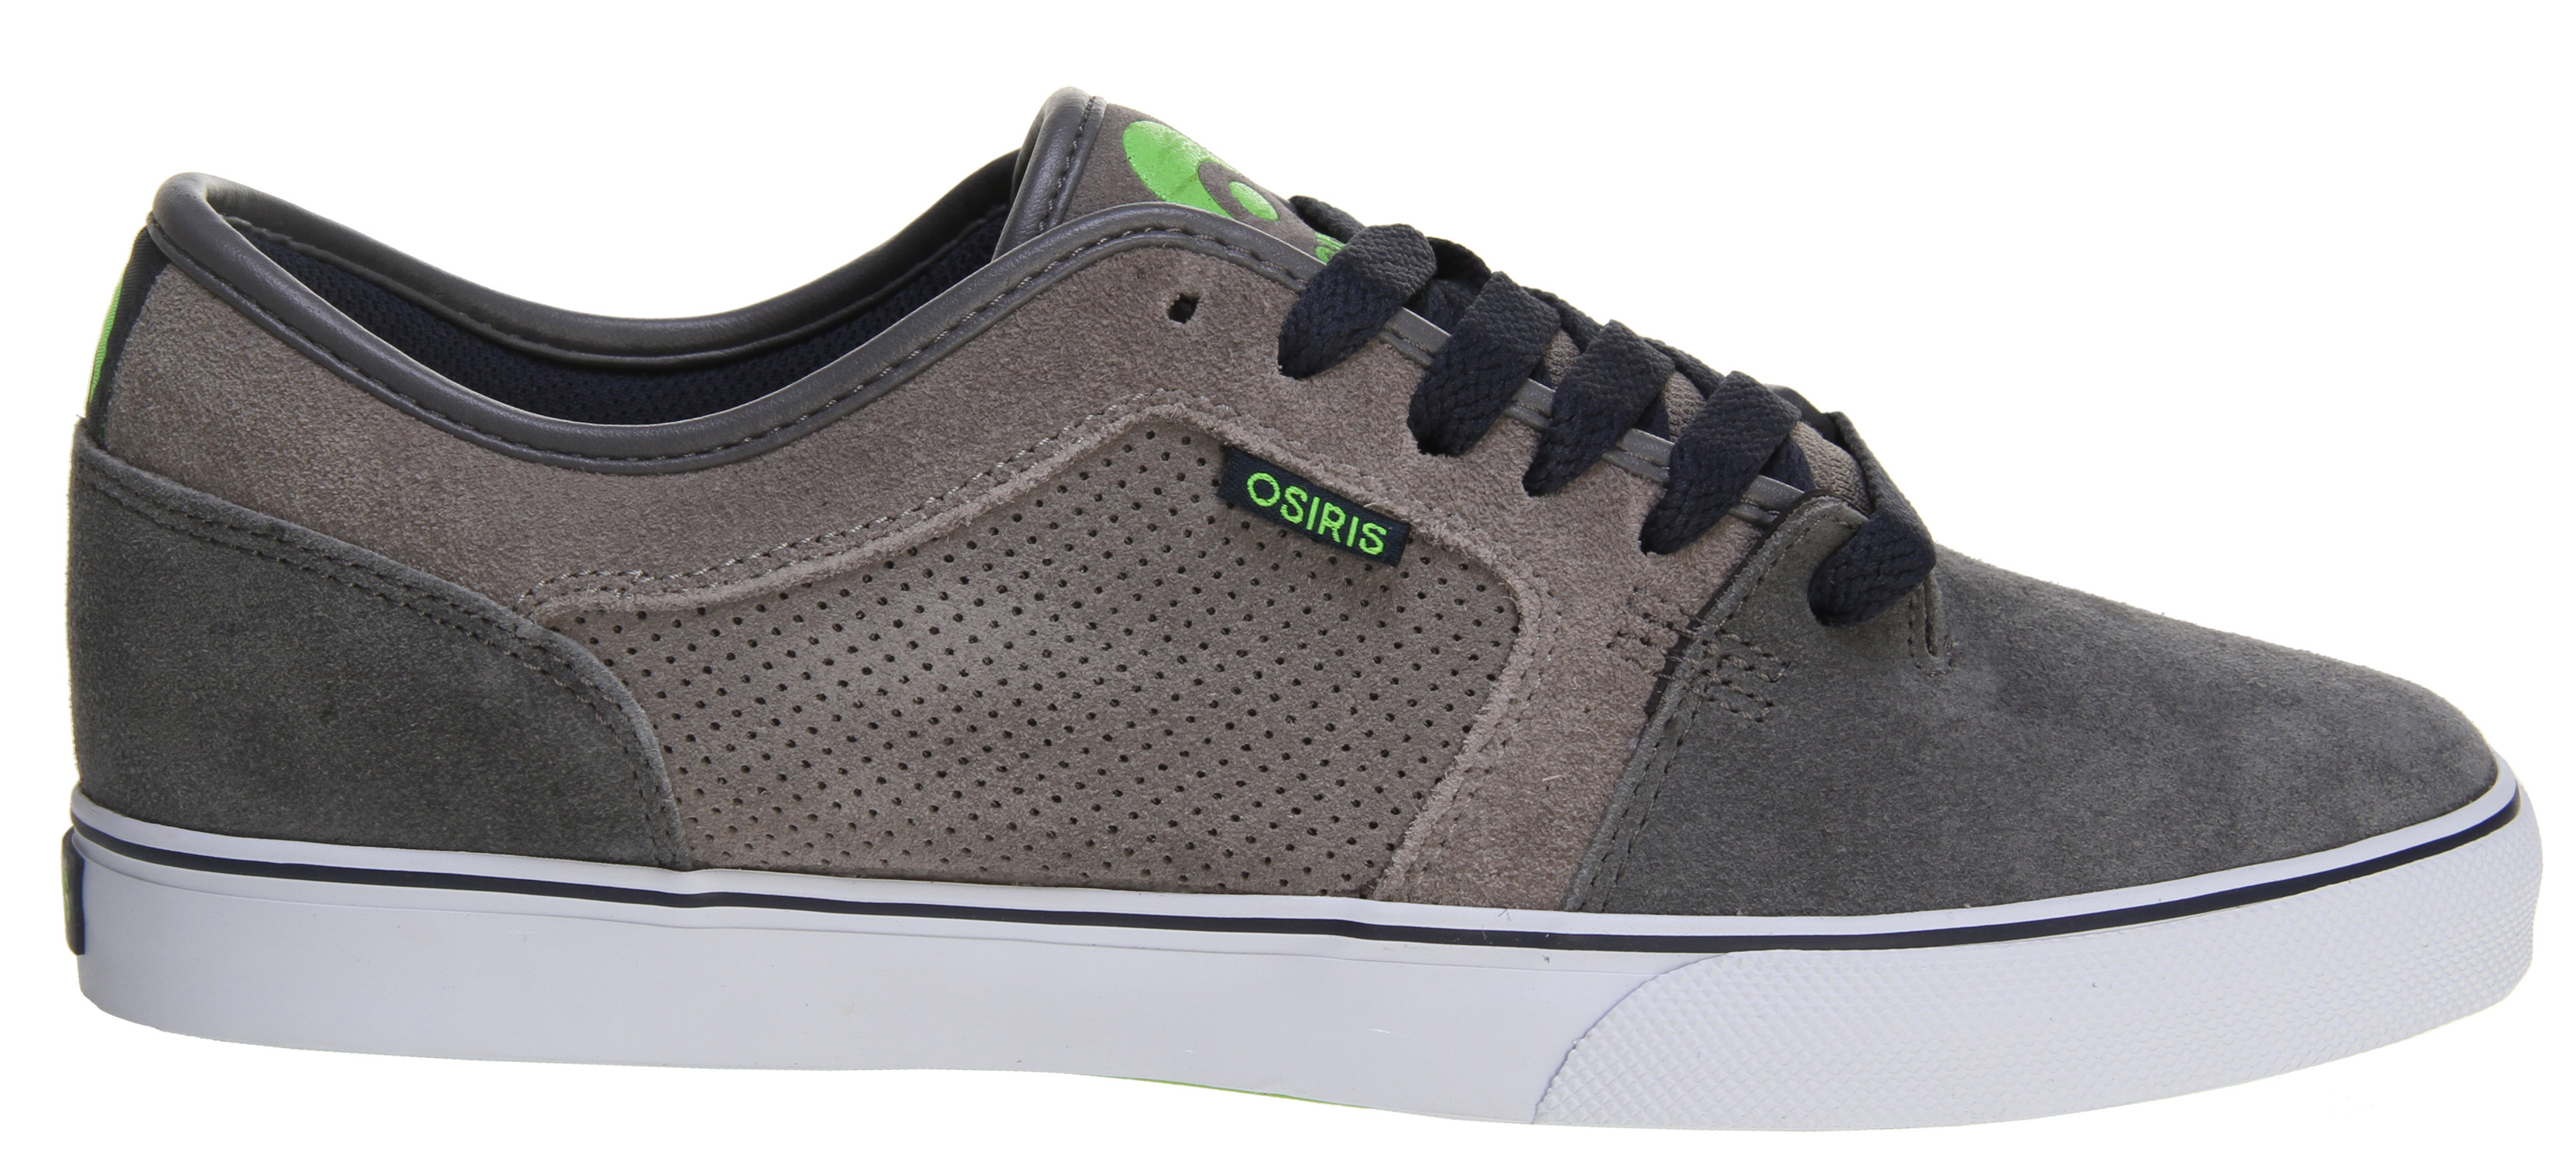 Skateboard Key Features of the Osiris Decay Skate Shoes: NOTE: THIS SHOE RUNS A HALF SIZE BIG. FOR EXAMPLE, IF YOU WEAR A SIZE 9, PLEASE ORDER A SIZE 8.5. vulcanized sole construction featuring an EVA drop in midsole with traditional vulc wrap for maximum support and comfort soft molded EVA insole with full latex covering for added durability and improved fit abrasion-resistant rubber outsole for wear, durability, and ideal performance classic skate styling with reinforced high abrasion areas for superior durability light-weight padded tongue and collar for added comfort and support combination lacing system for added protection and styling - $31.95